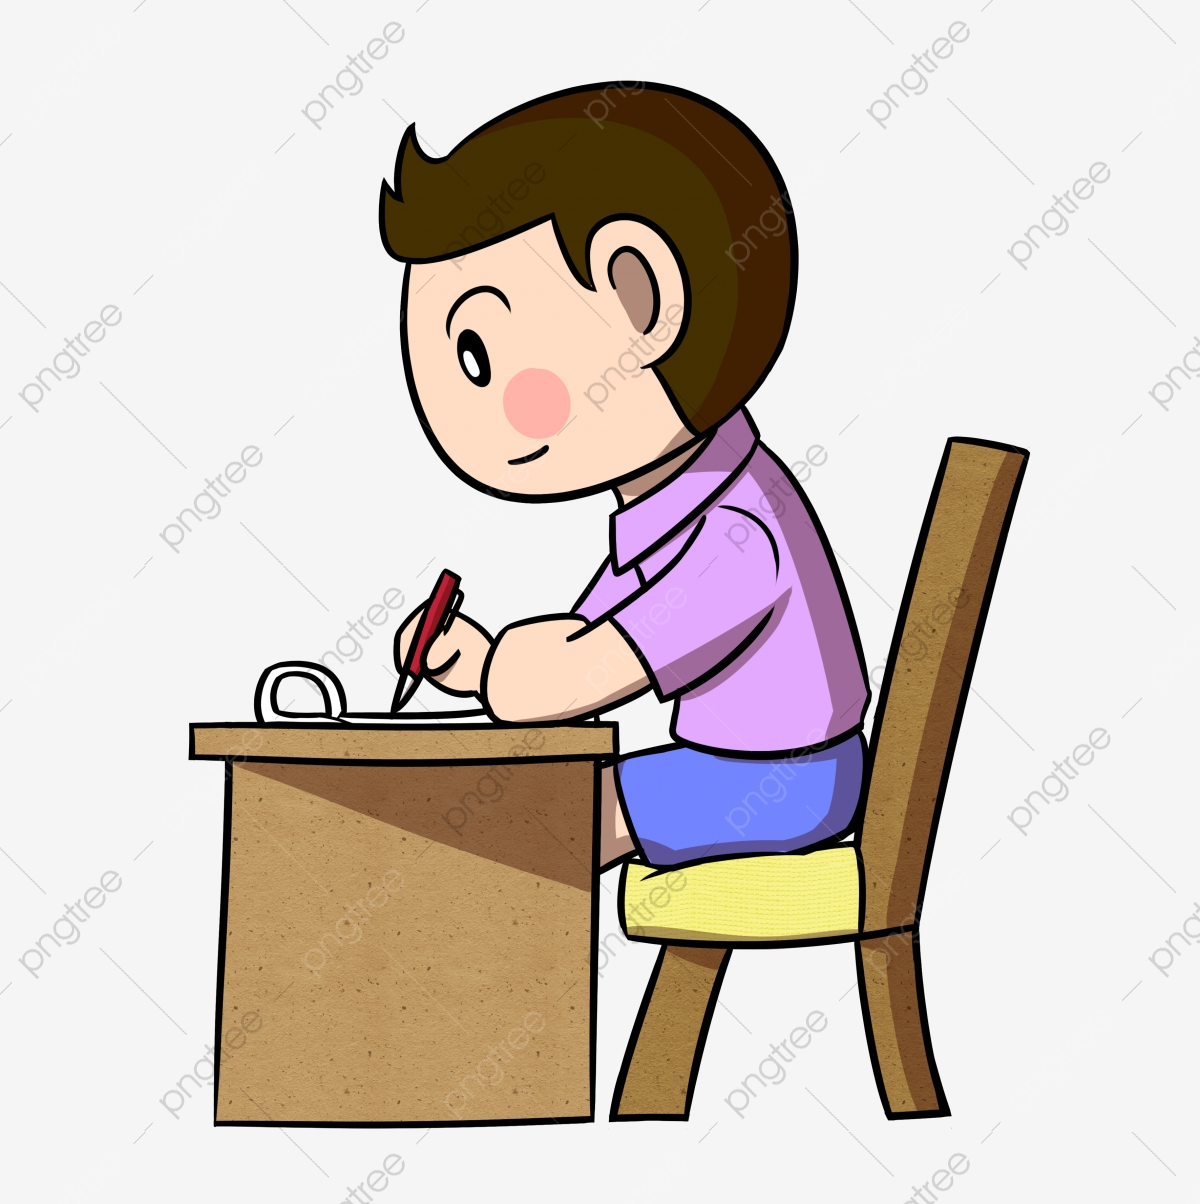 Cartoon Pupils Work Hard To Write Homework Png Transparent Bottom Cartoon Student Pupil Png Transparent Clipart Image And Psd File For Free Download